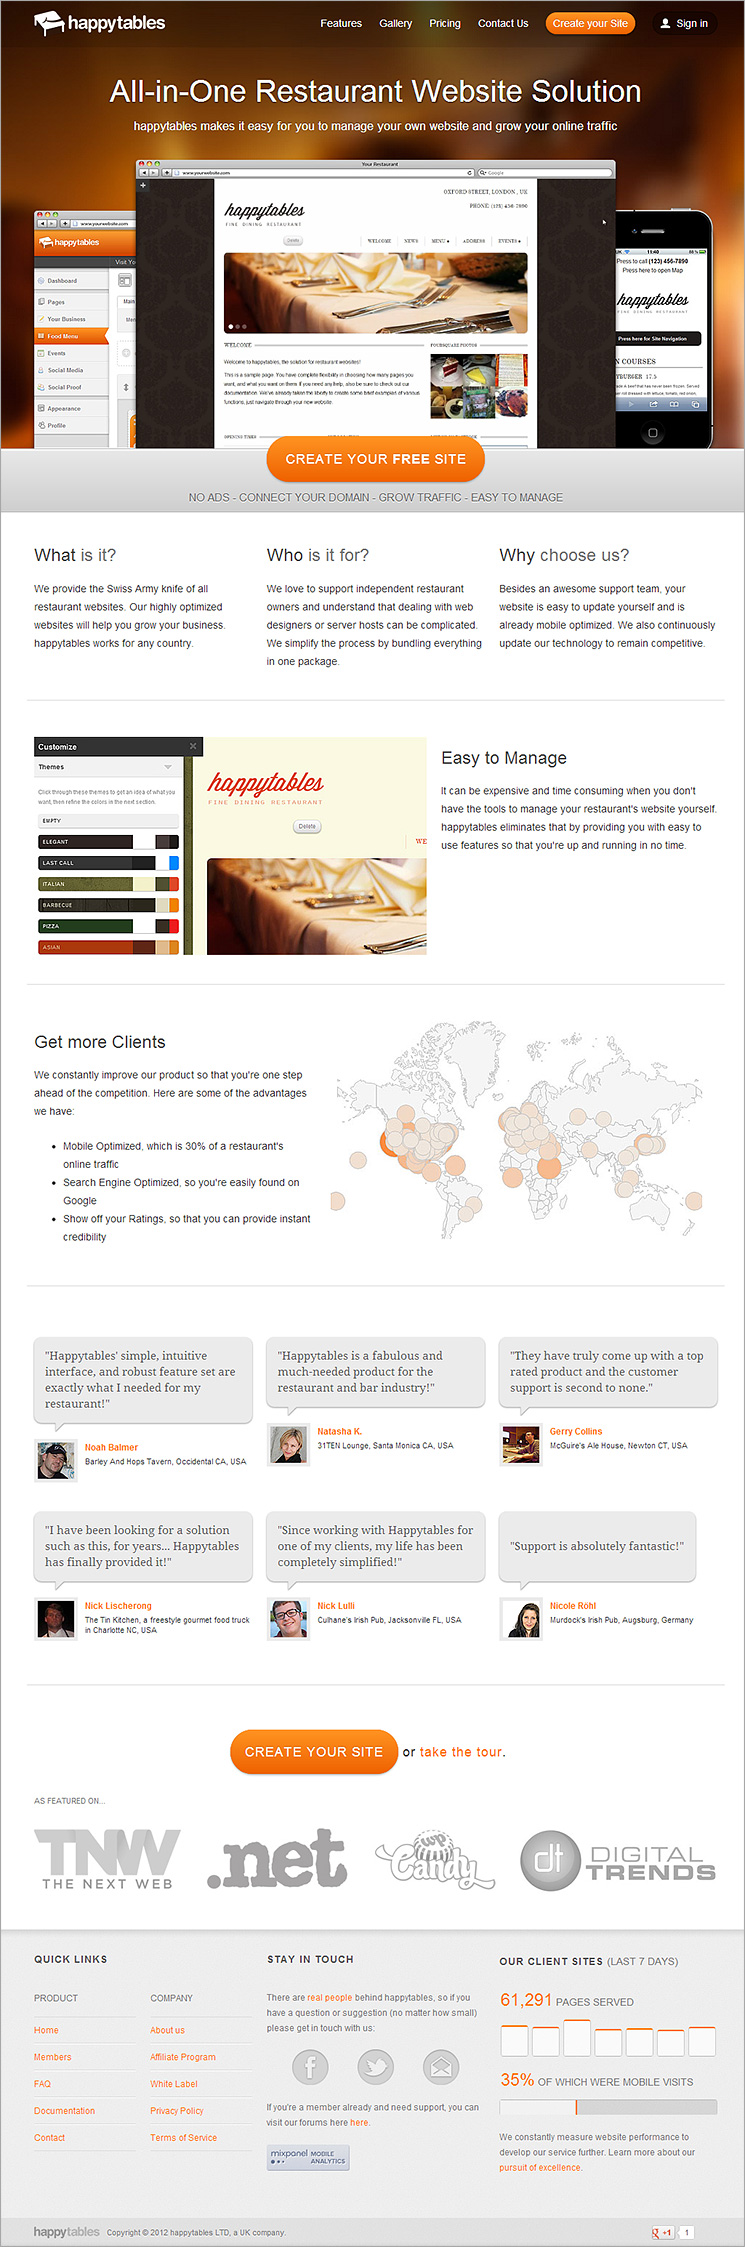 Landing Page Before